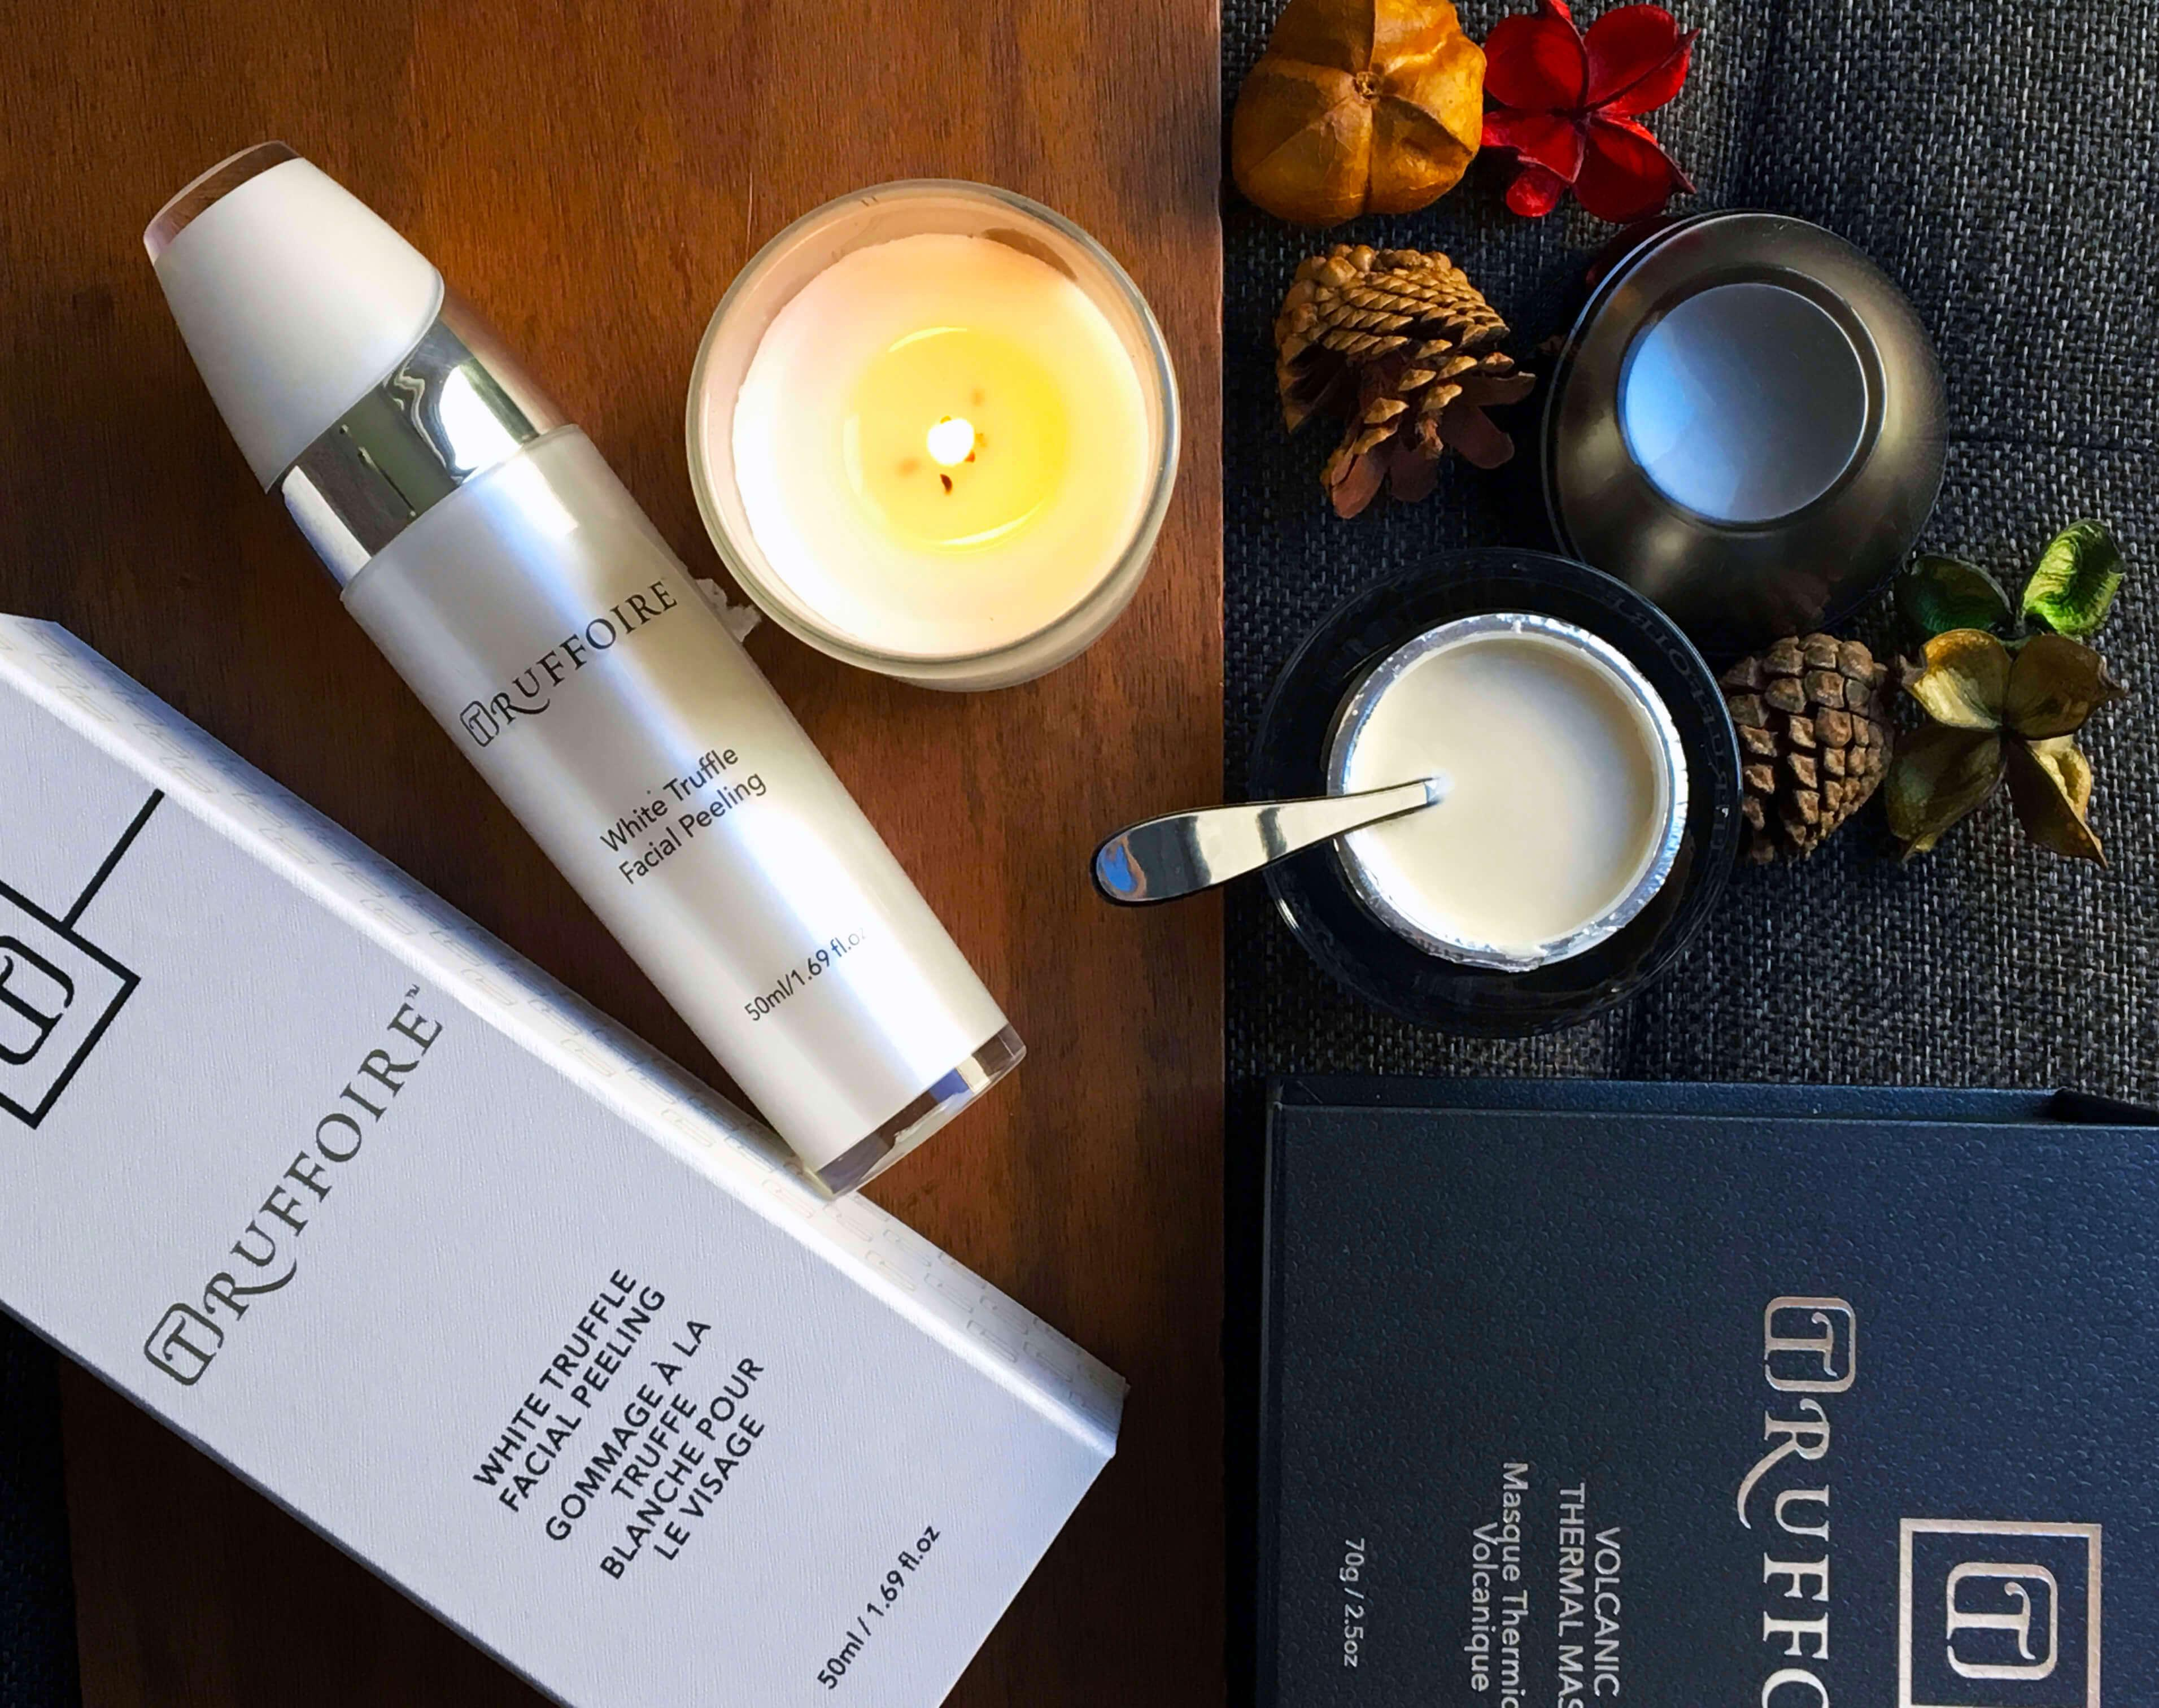 Media Shelf / Truffoire Review: My Skin Care Experience